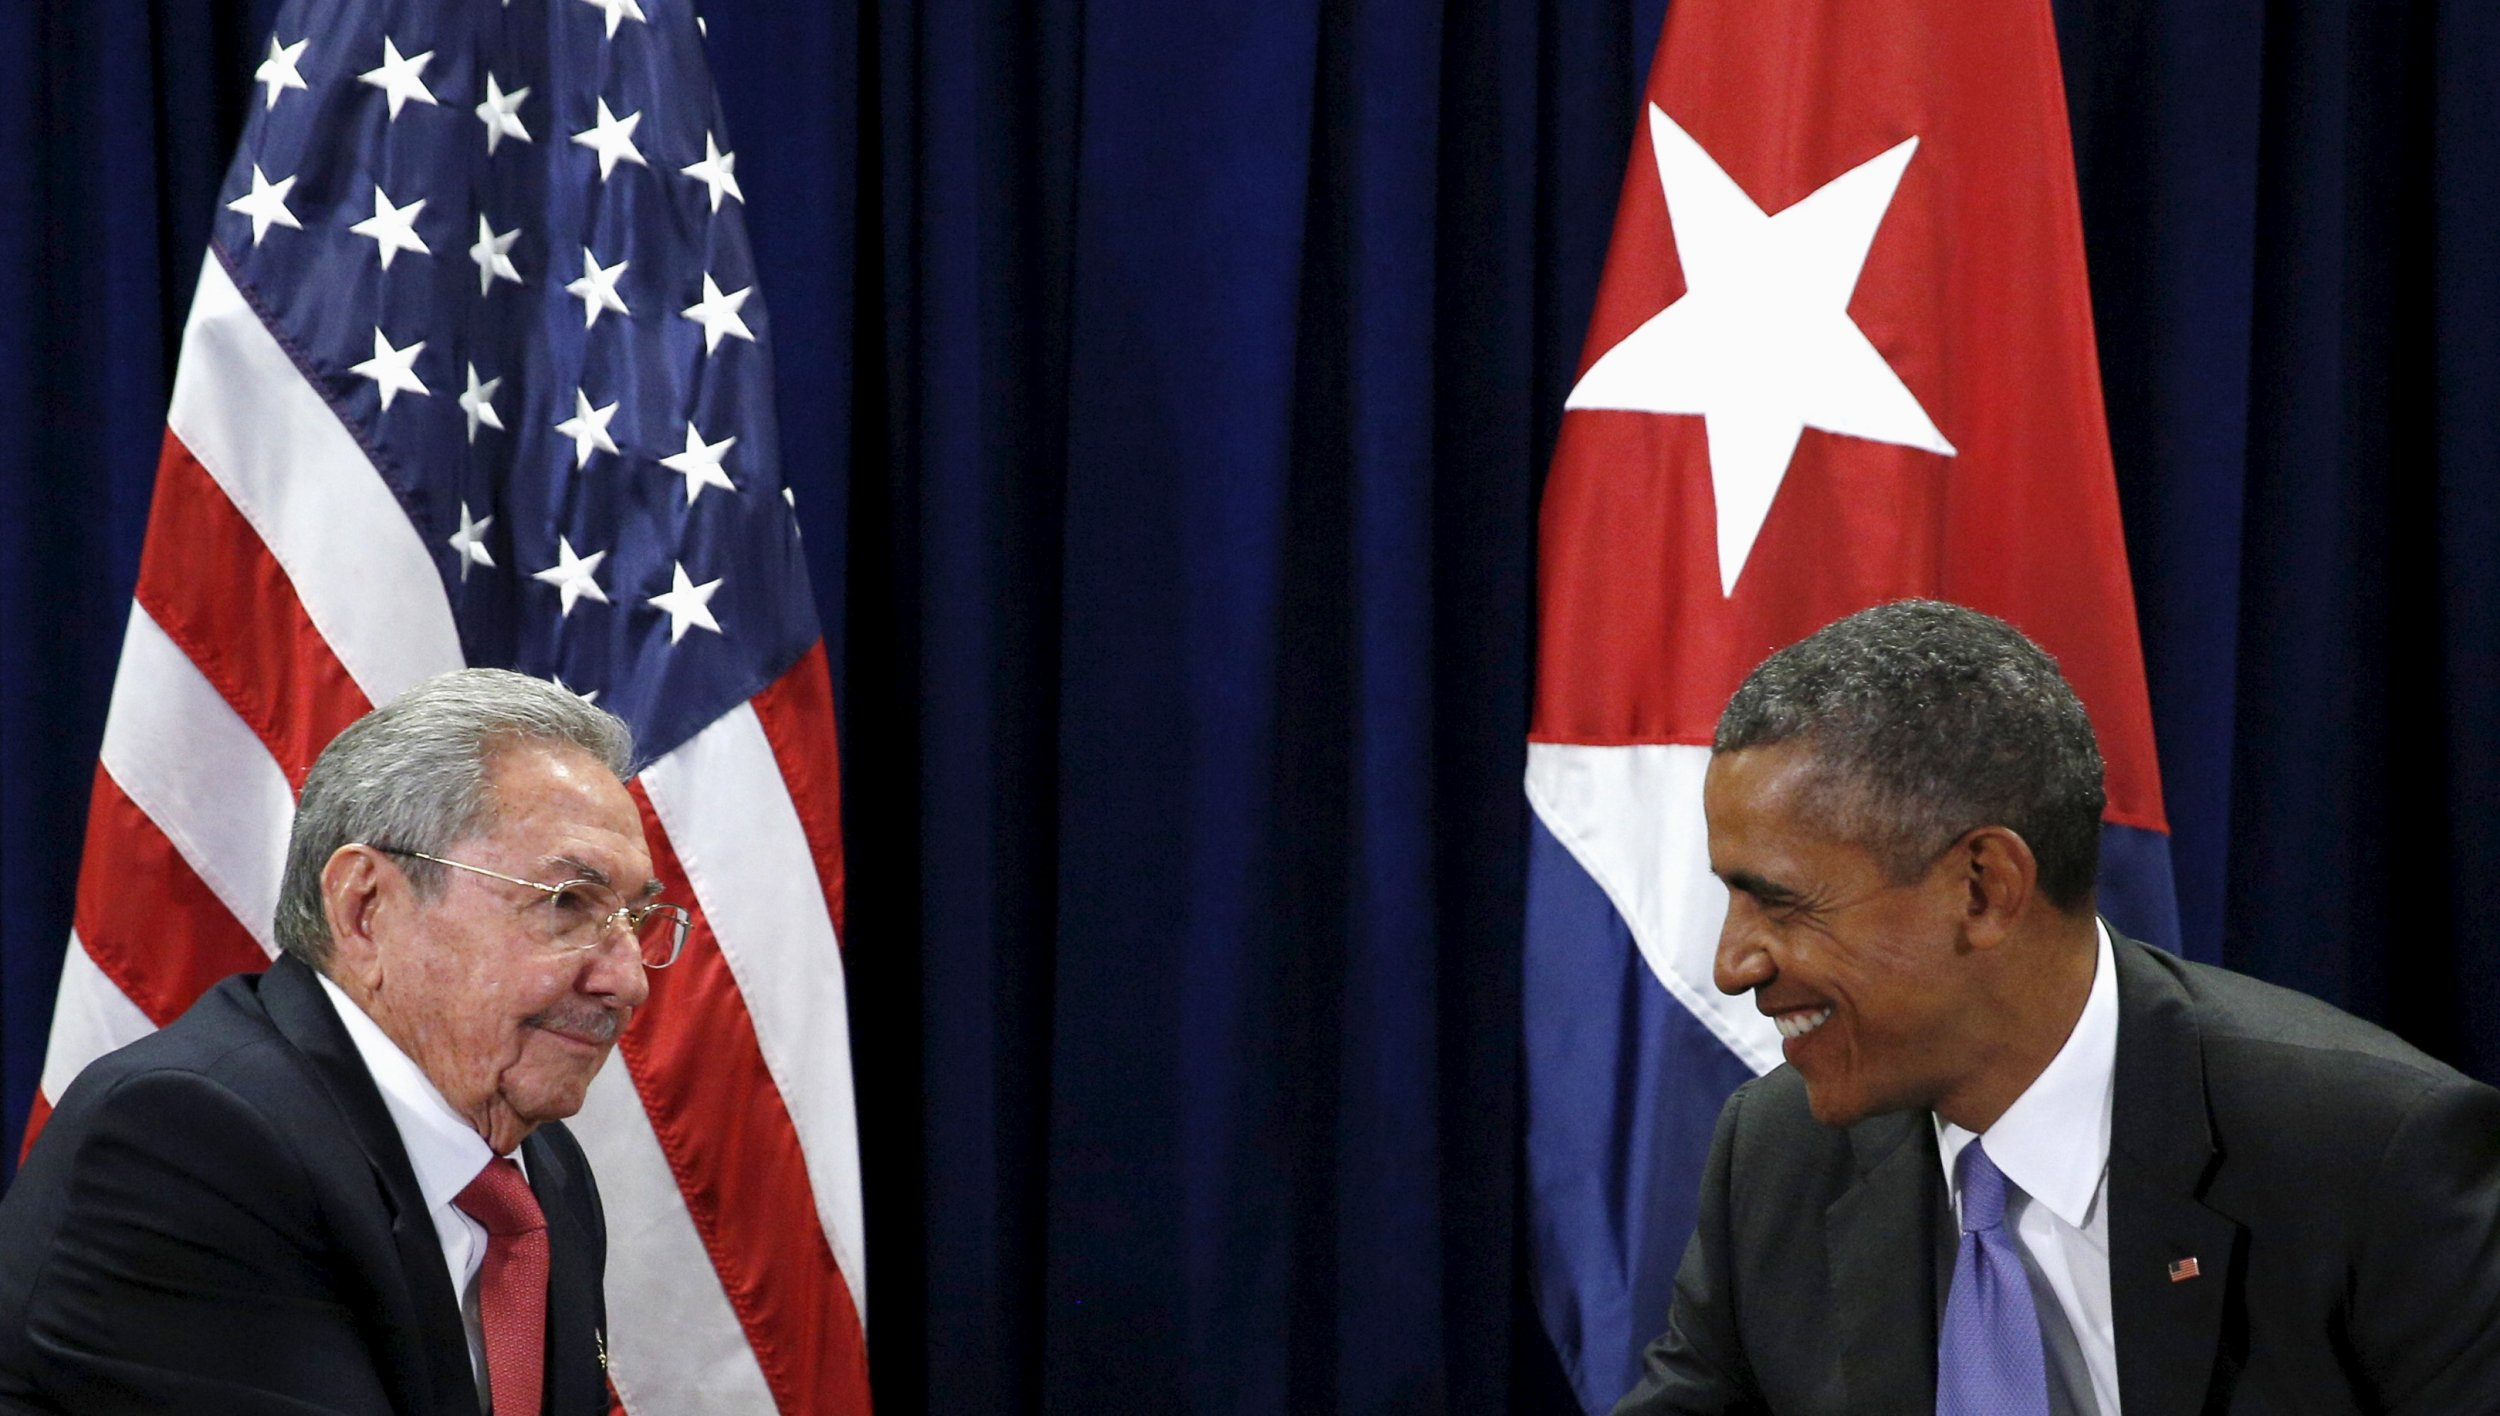 Barack Obama and Raul Castro meet at the U.N. General Assembly.